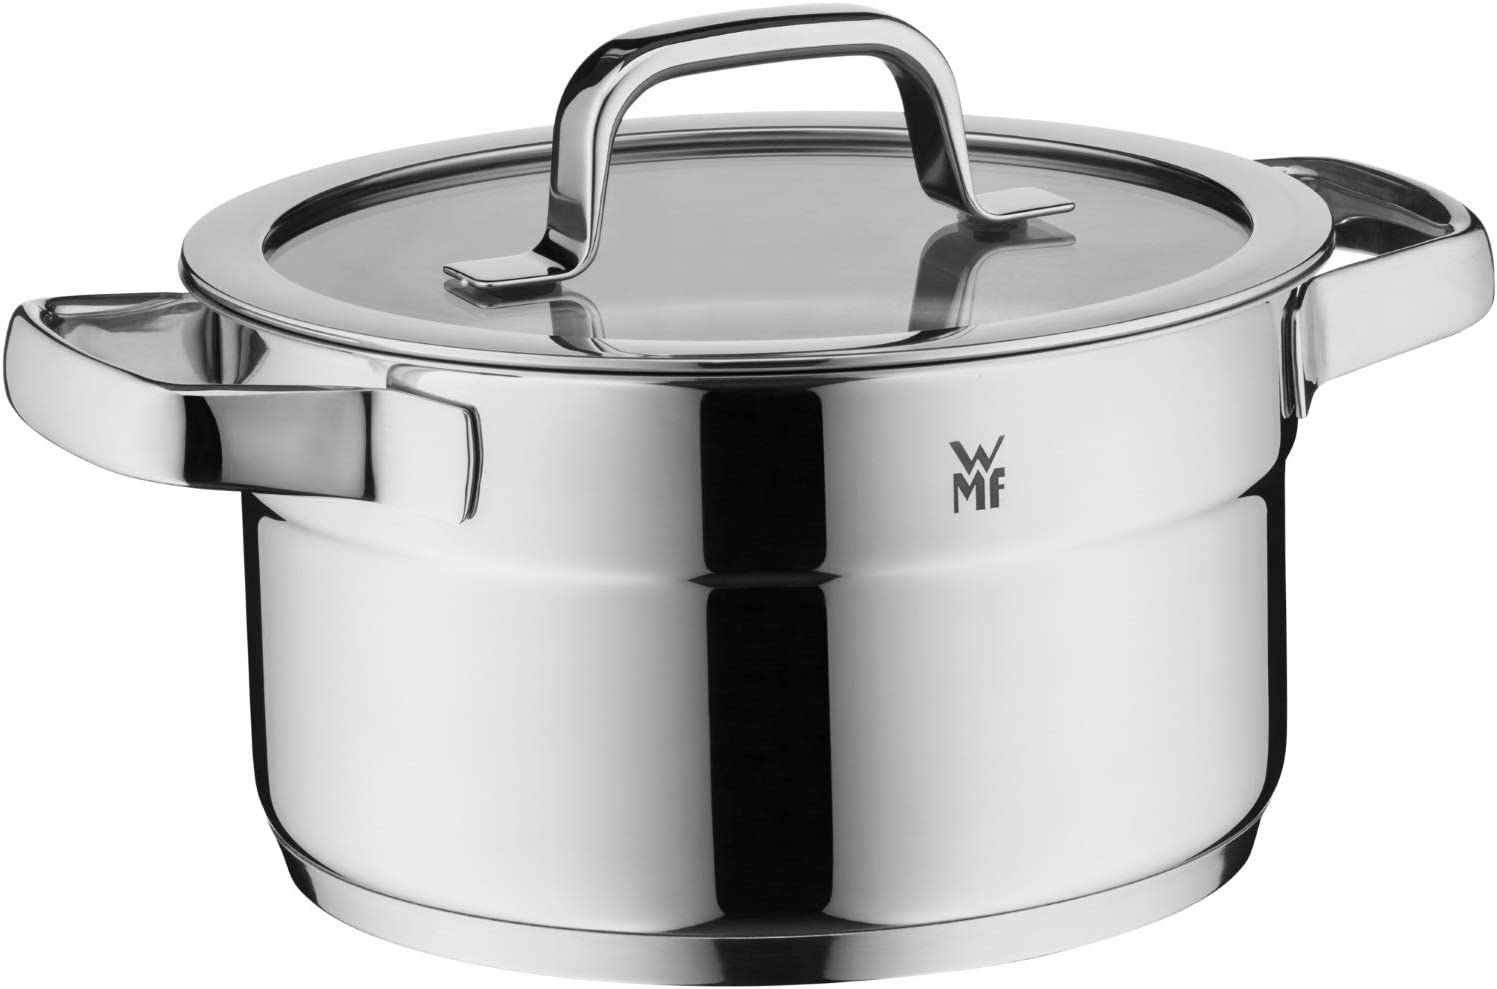 WMF Compact Cuisine 4-Piece Cookware Set with Glass Lid//Saucepan//Cromargan Polished Stainless Steel//Induction//Internal Scale//Stackable